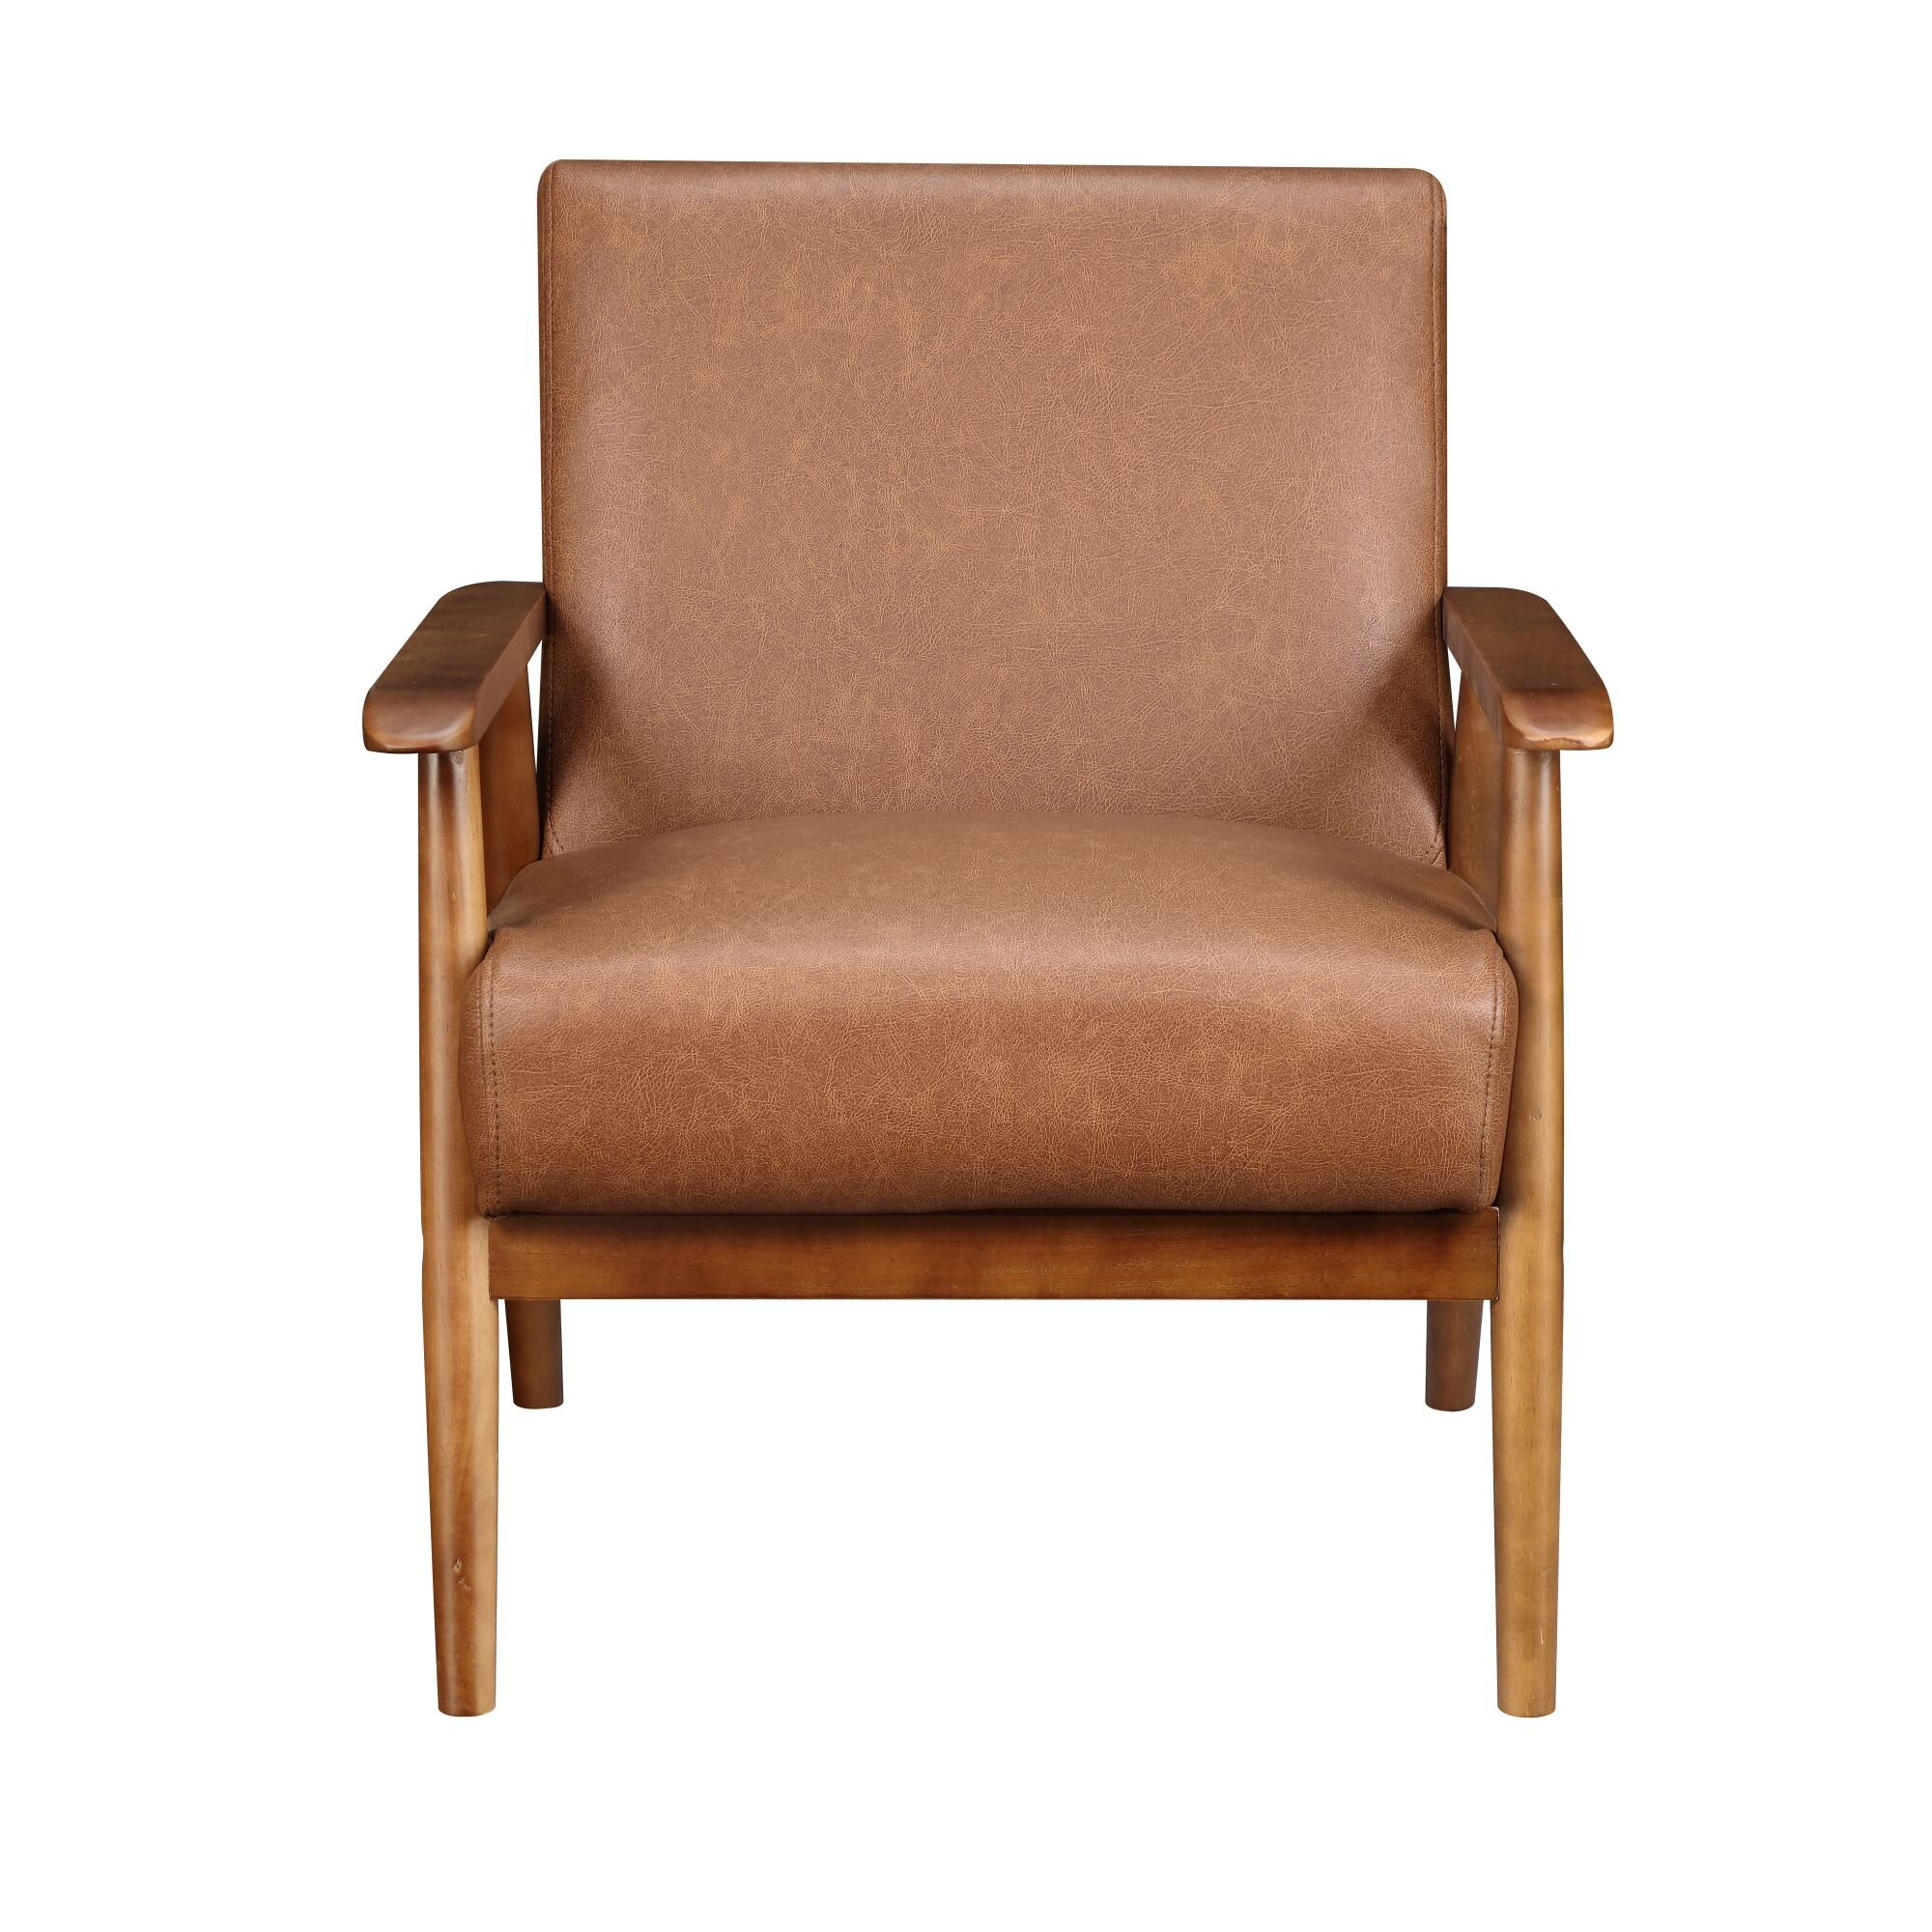 Track Arm Wood Accent Chairs You'Ll Love In 2021 | Wayfair In Biggerstaff Polyester Blend Armchairs (View 7 of 15)